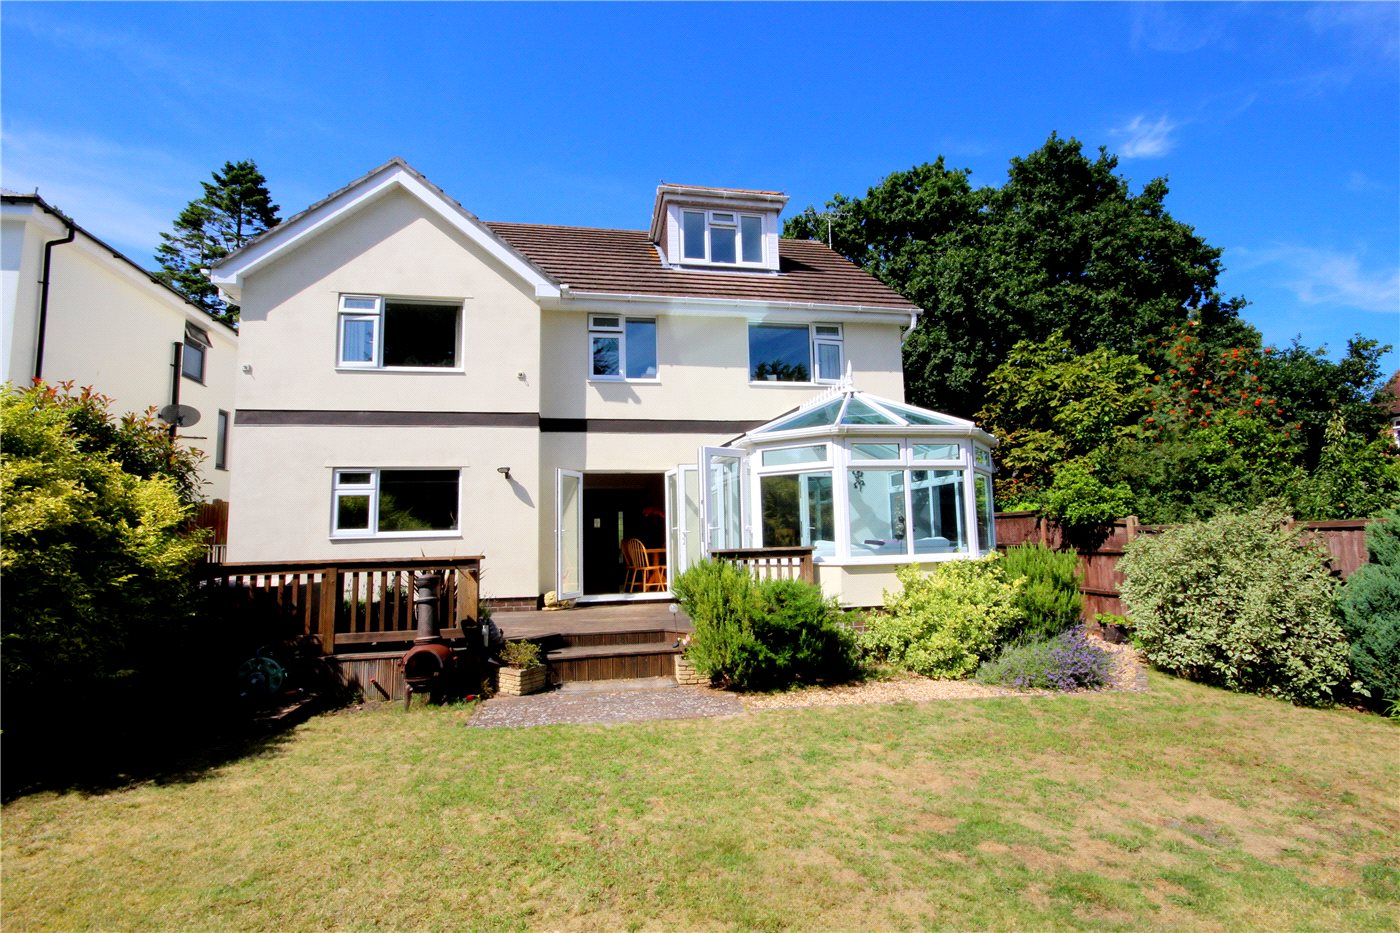 5 Bedrooms Detached House for sale in Blake Hill Crescent, Lilliput, Poole, Dorset, BH14